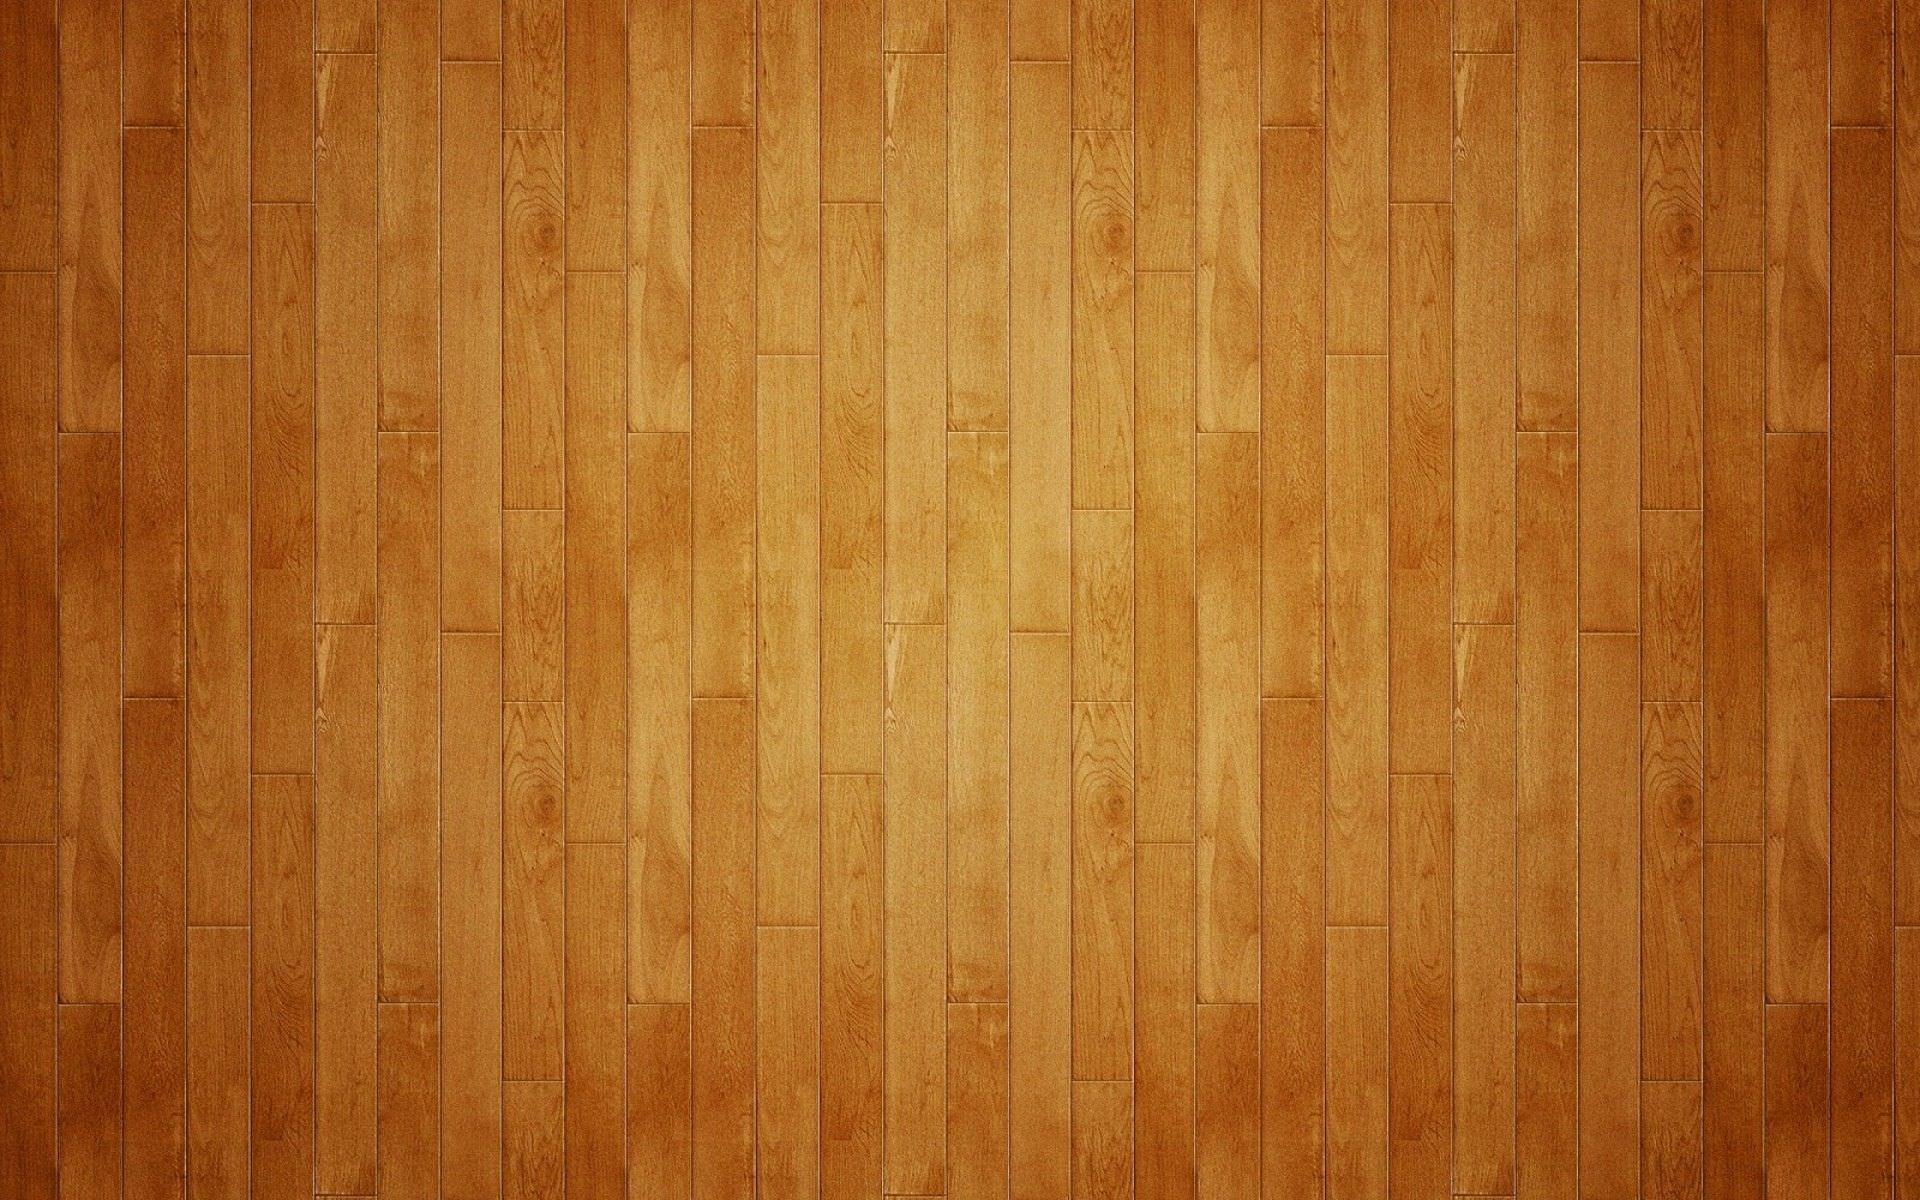 Wood Texture Wallpaper Background